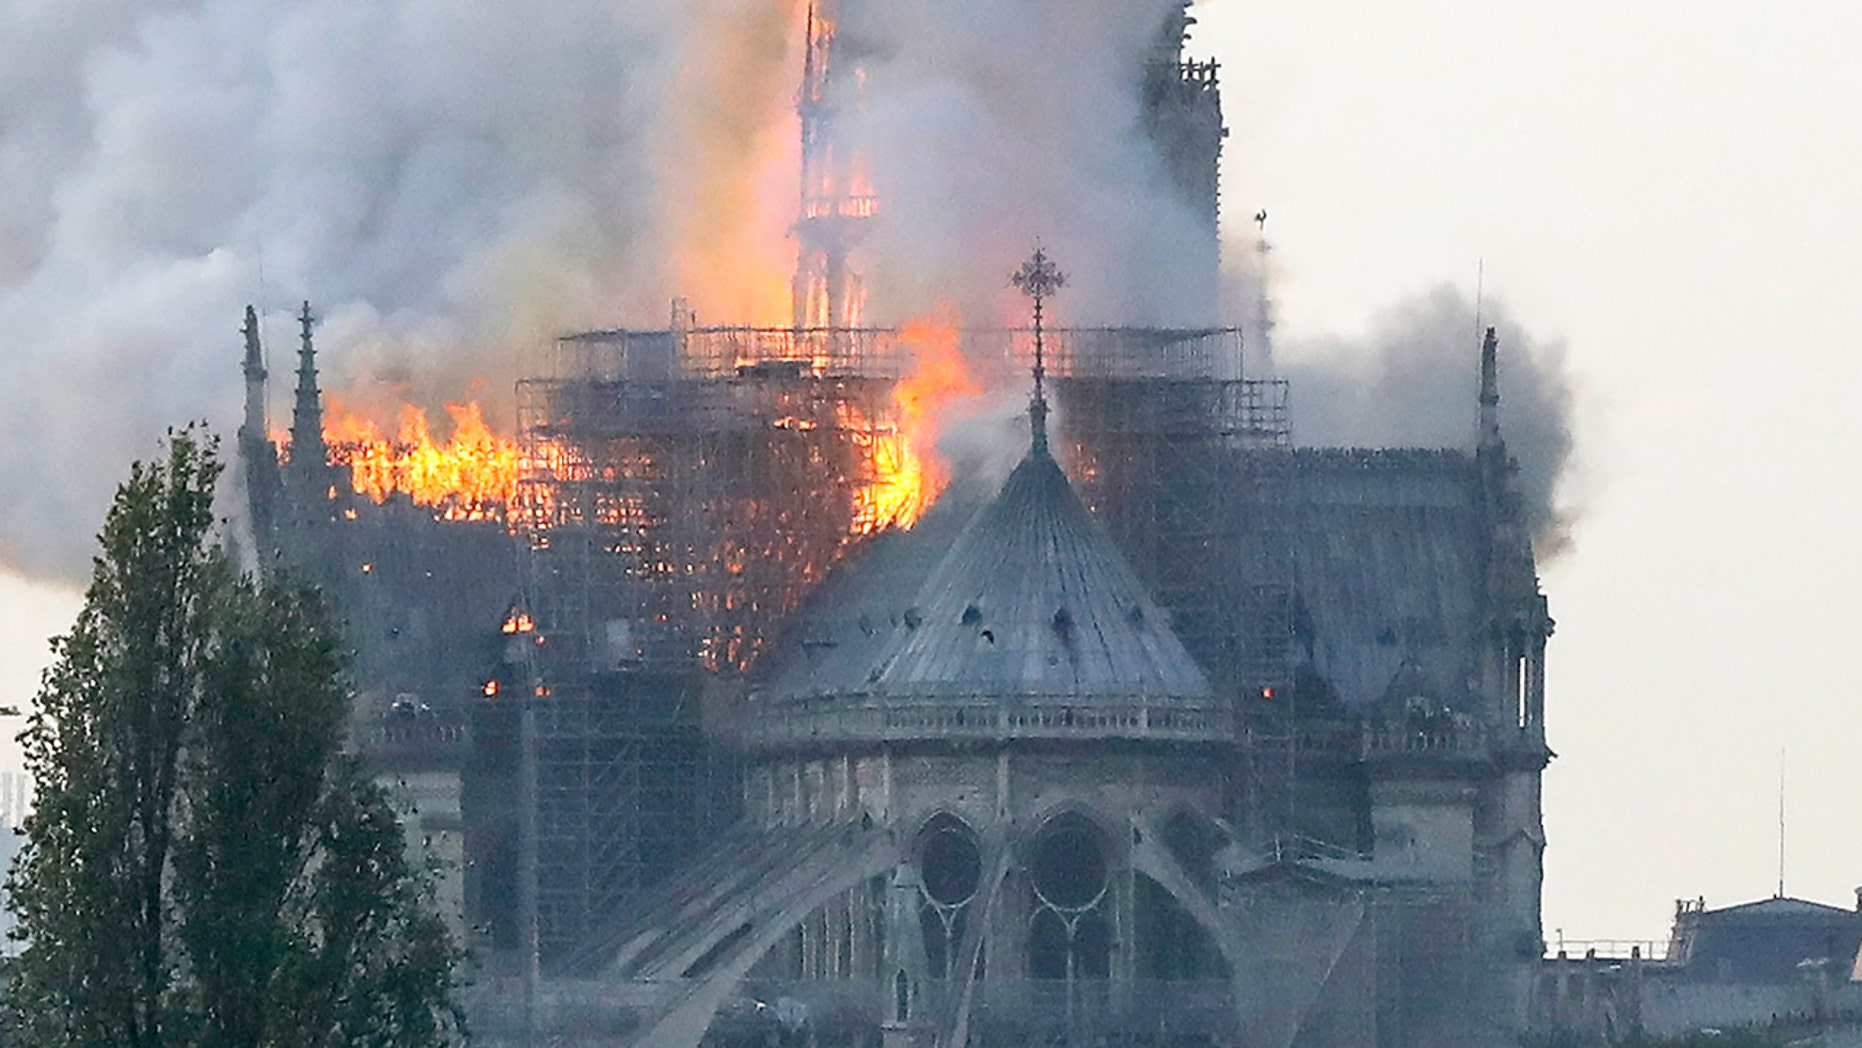 Smokes ascends as flames rise during a fire at the landmark Notre-Dame Cathedral in central Paris on April 15, 2019 afternoon.